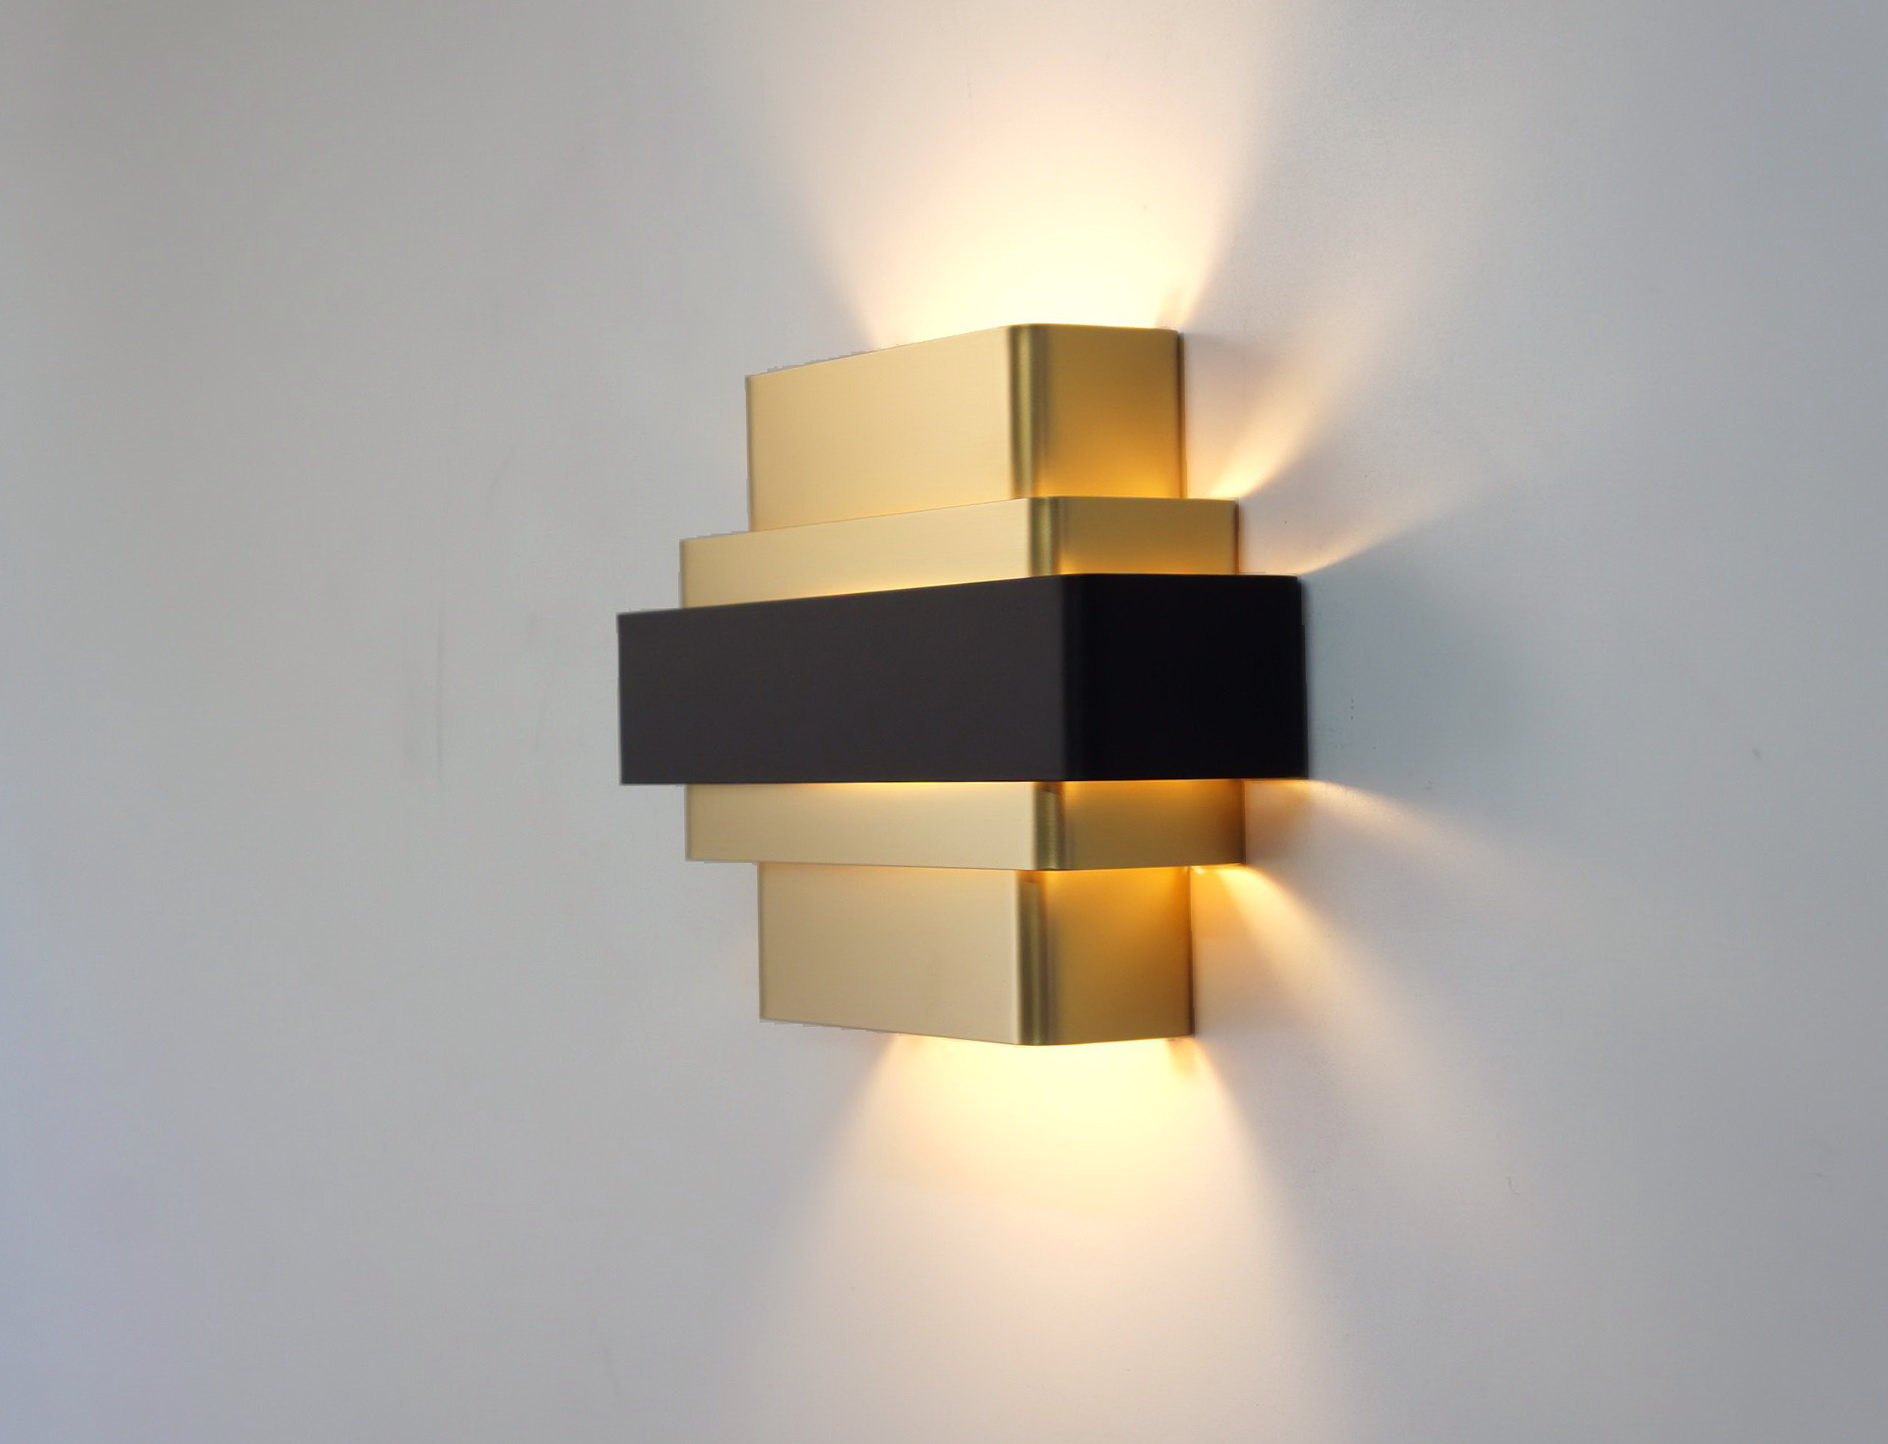 Wall Lamps For Home : Gold wall lamps to create a sophisticated decoration